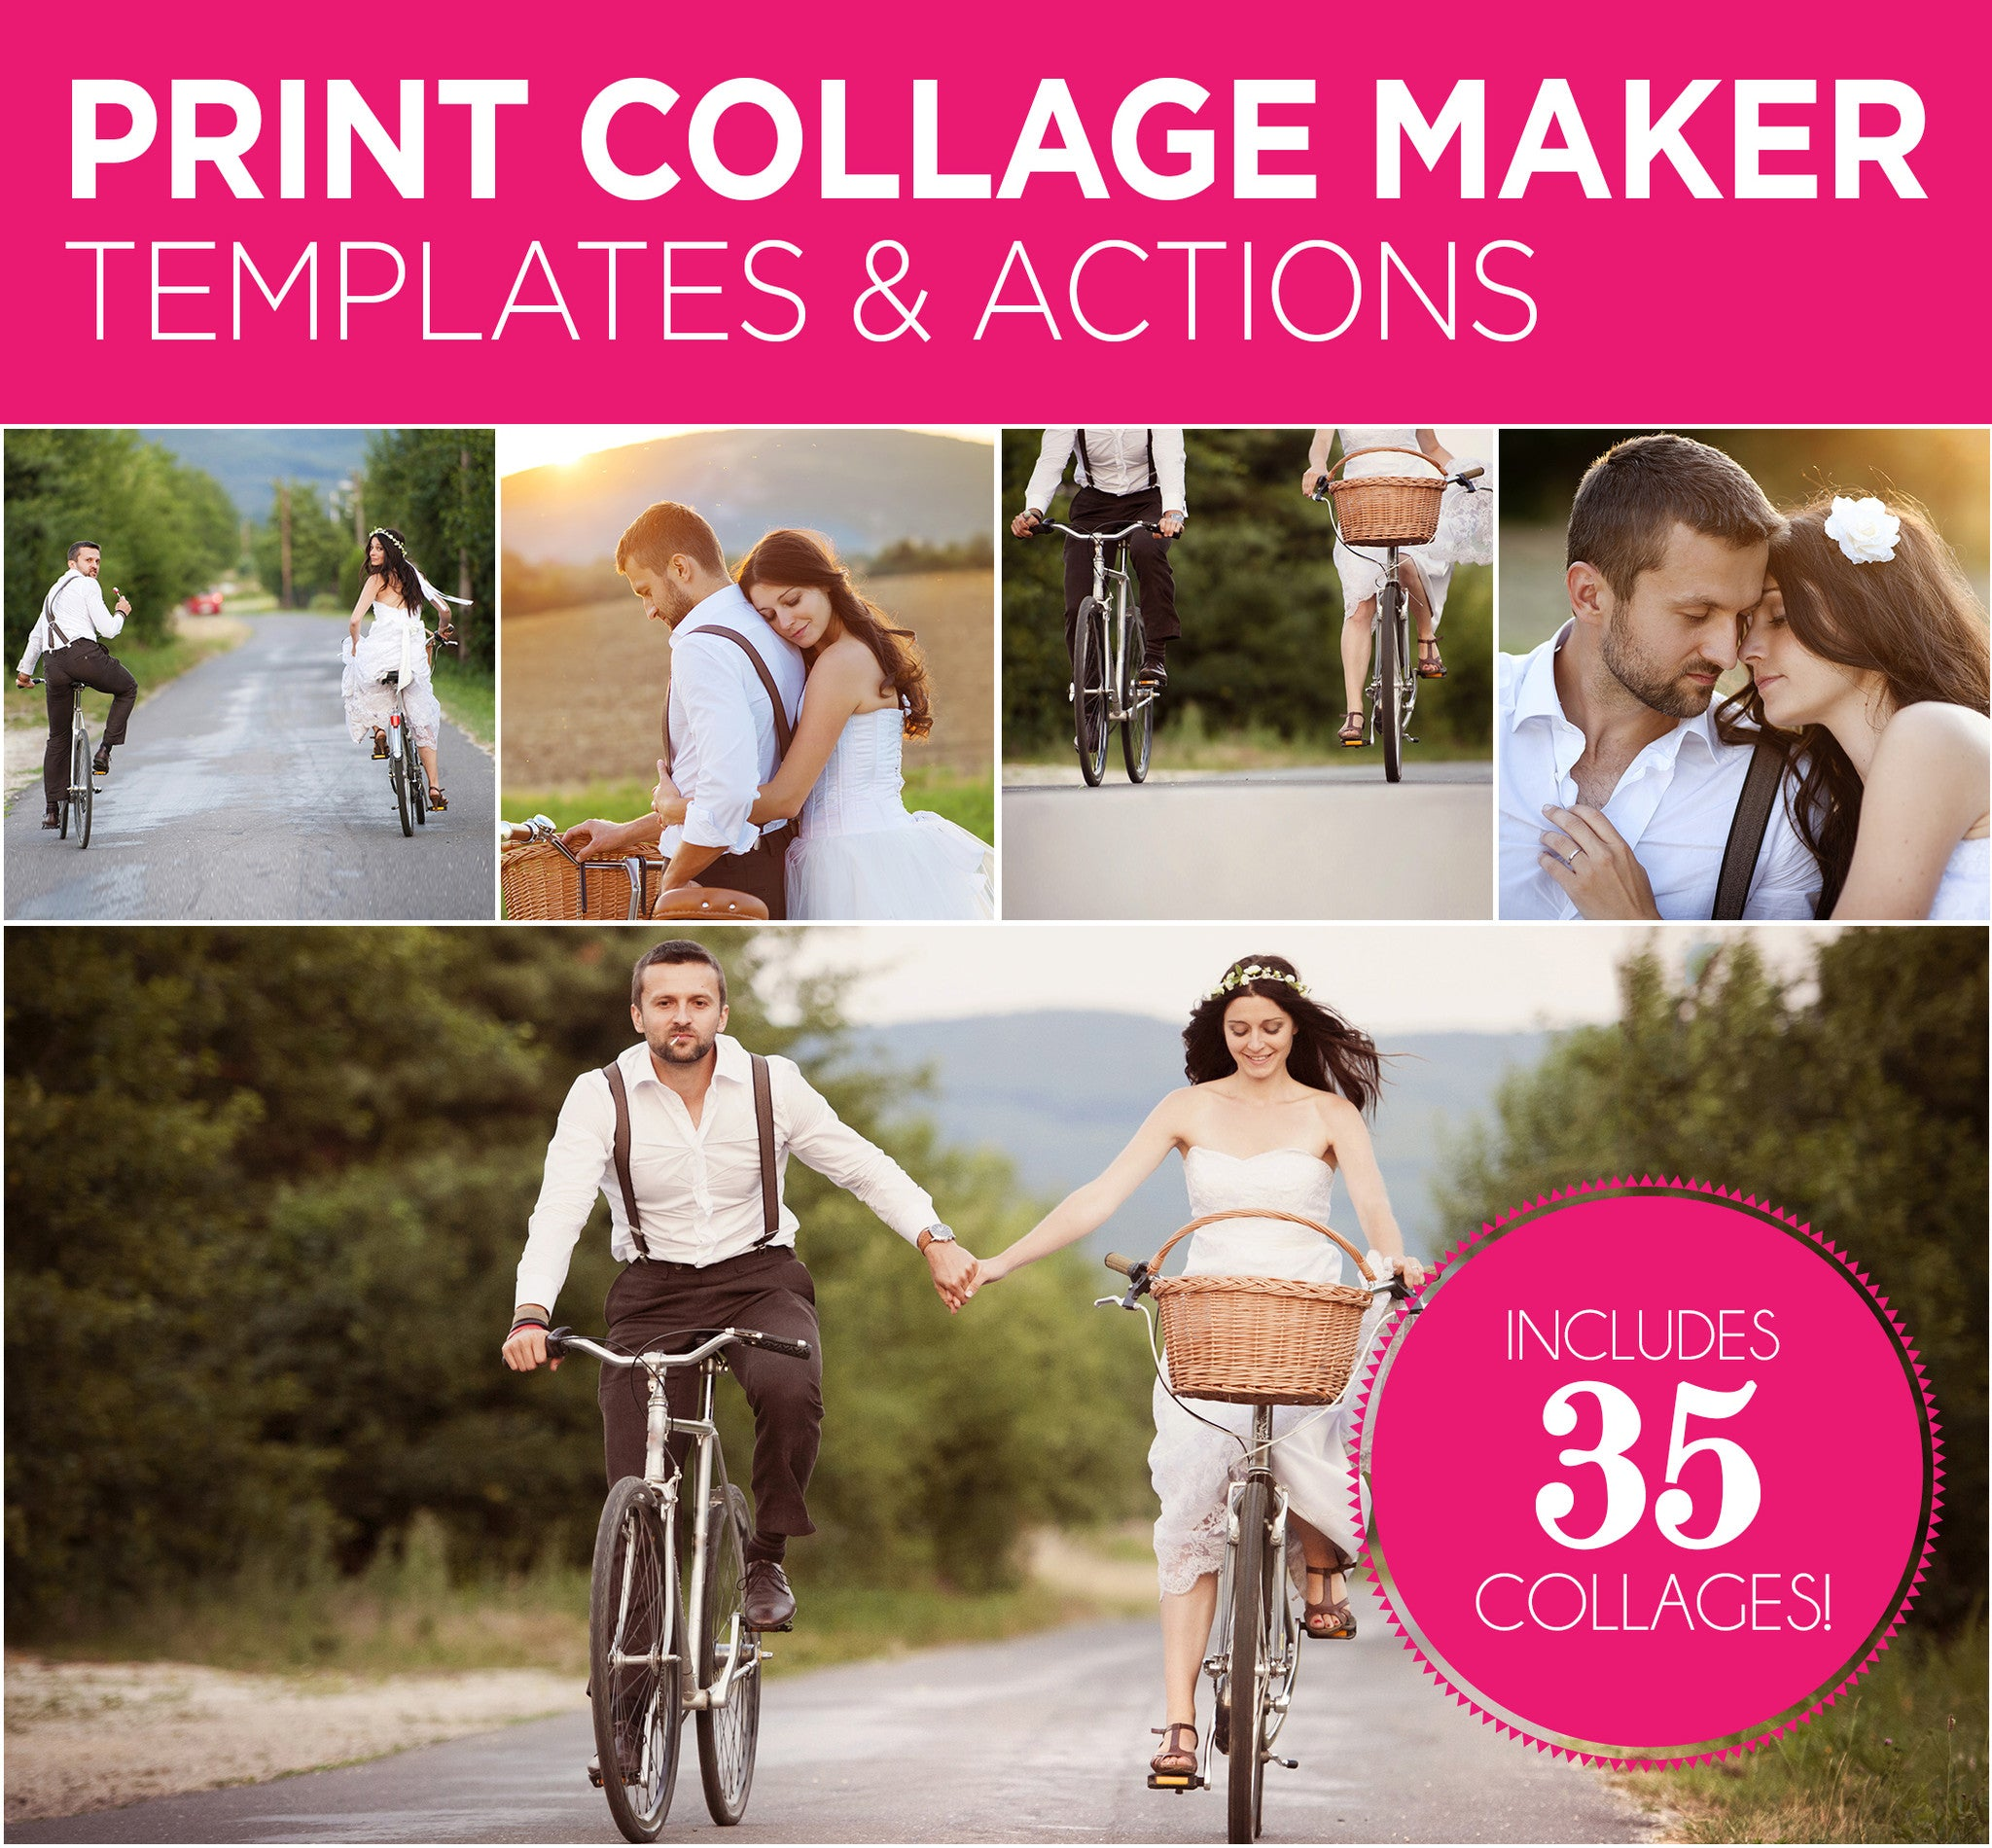 Print Collage Maker Templates & Actions | BP4U Guides